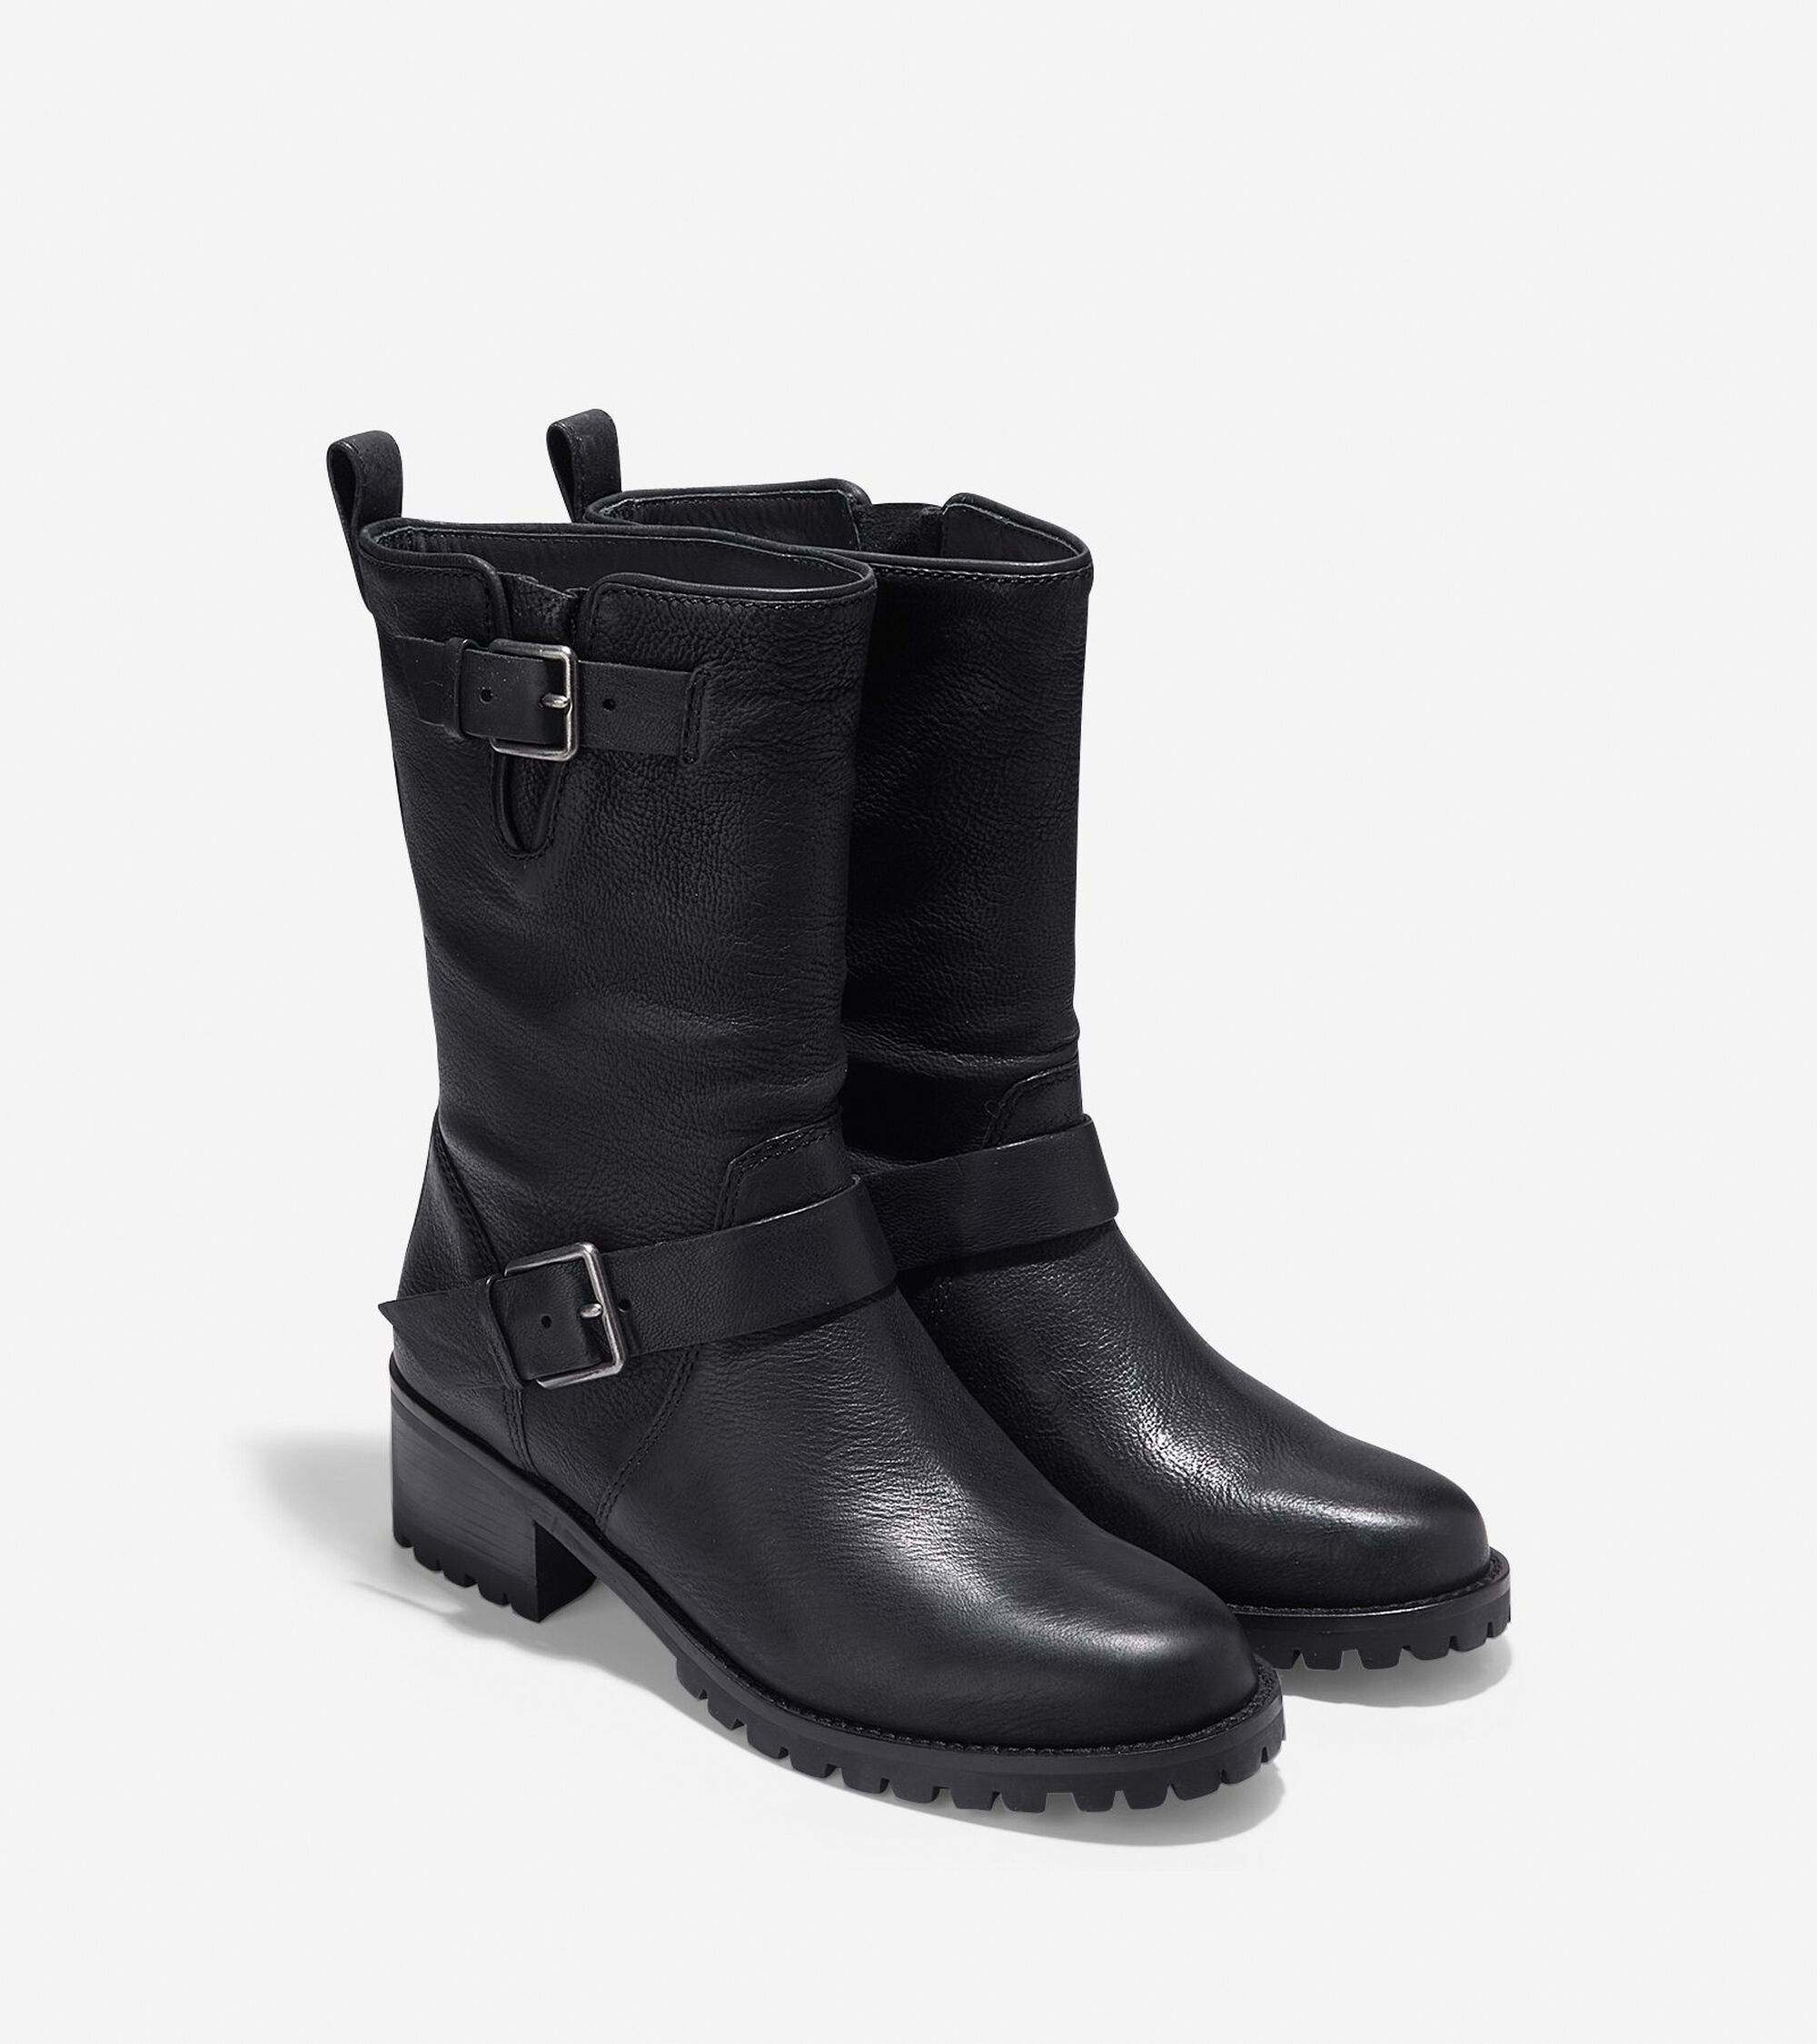 ed1f98c862e8 Women s Hemlock Boots 45mm in Black Leather